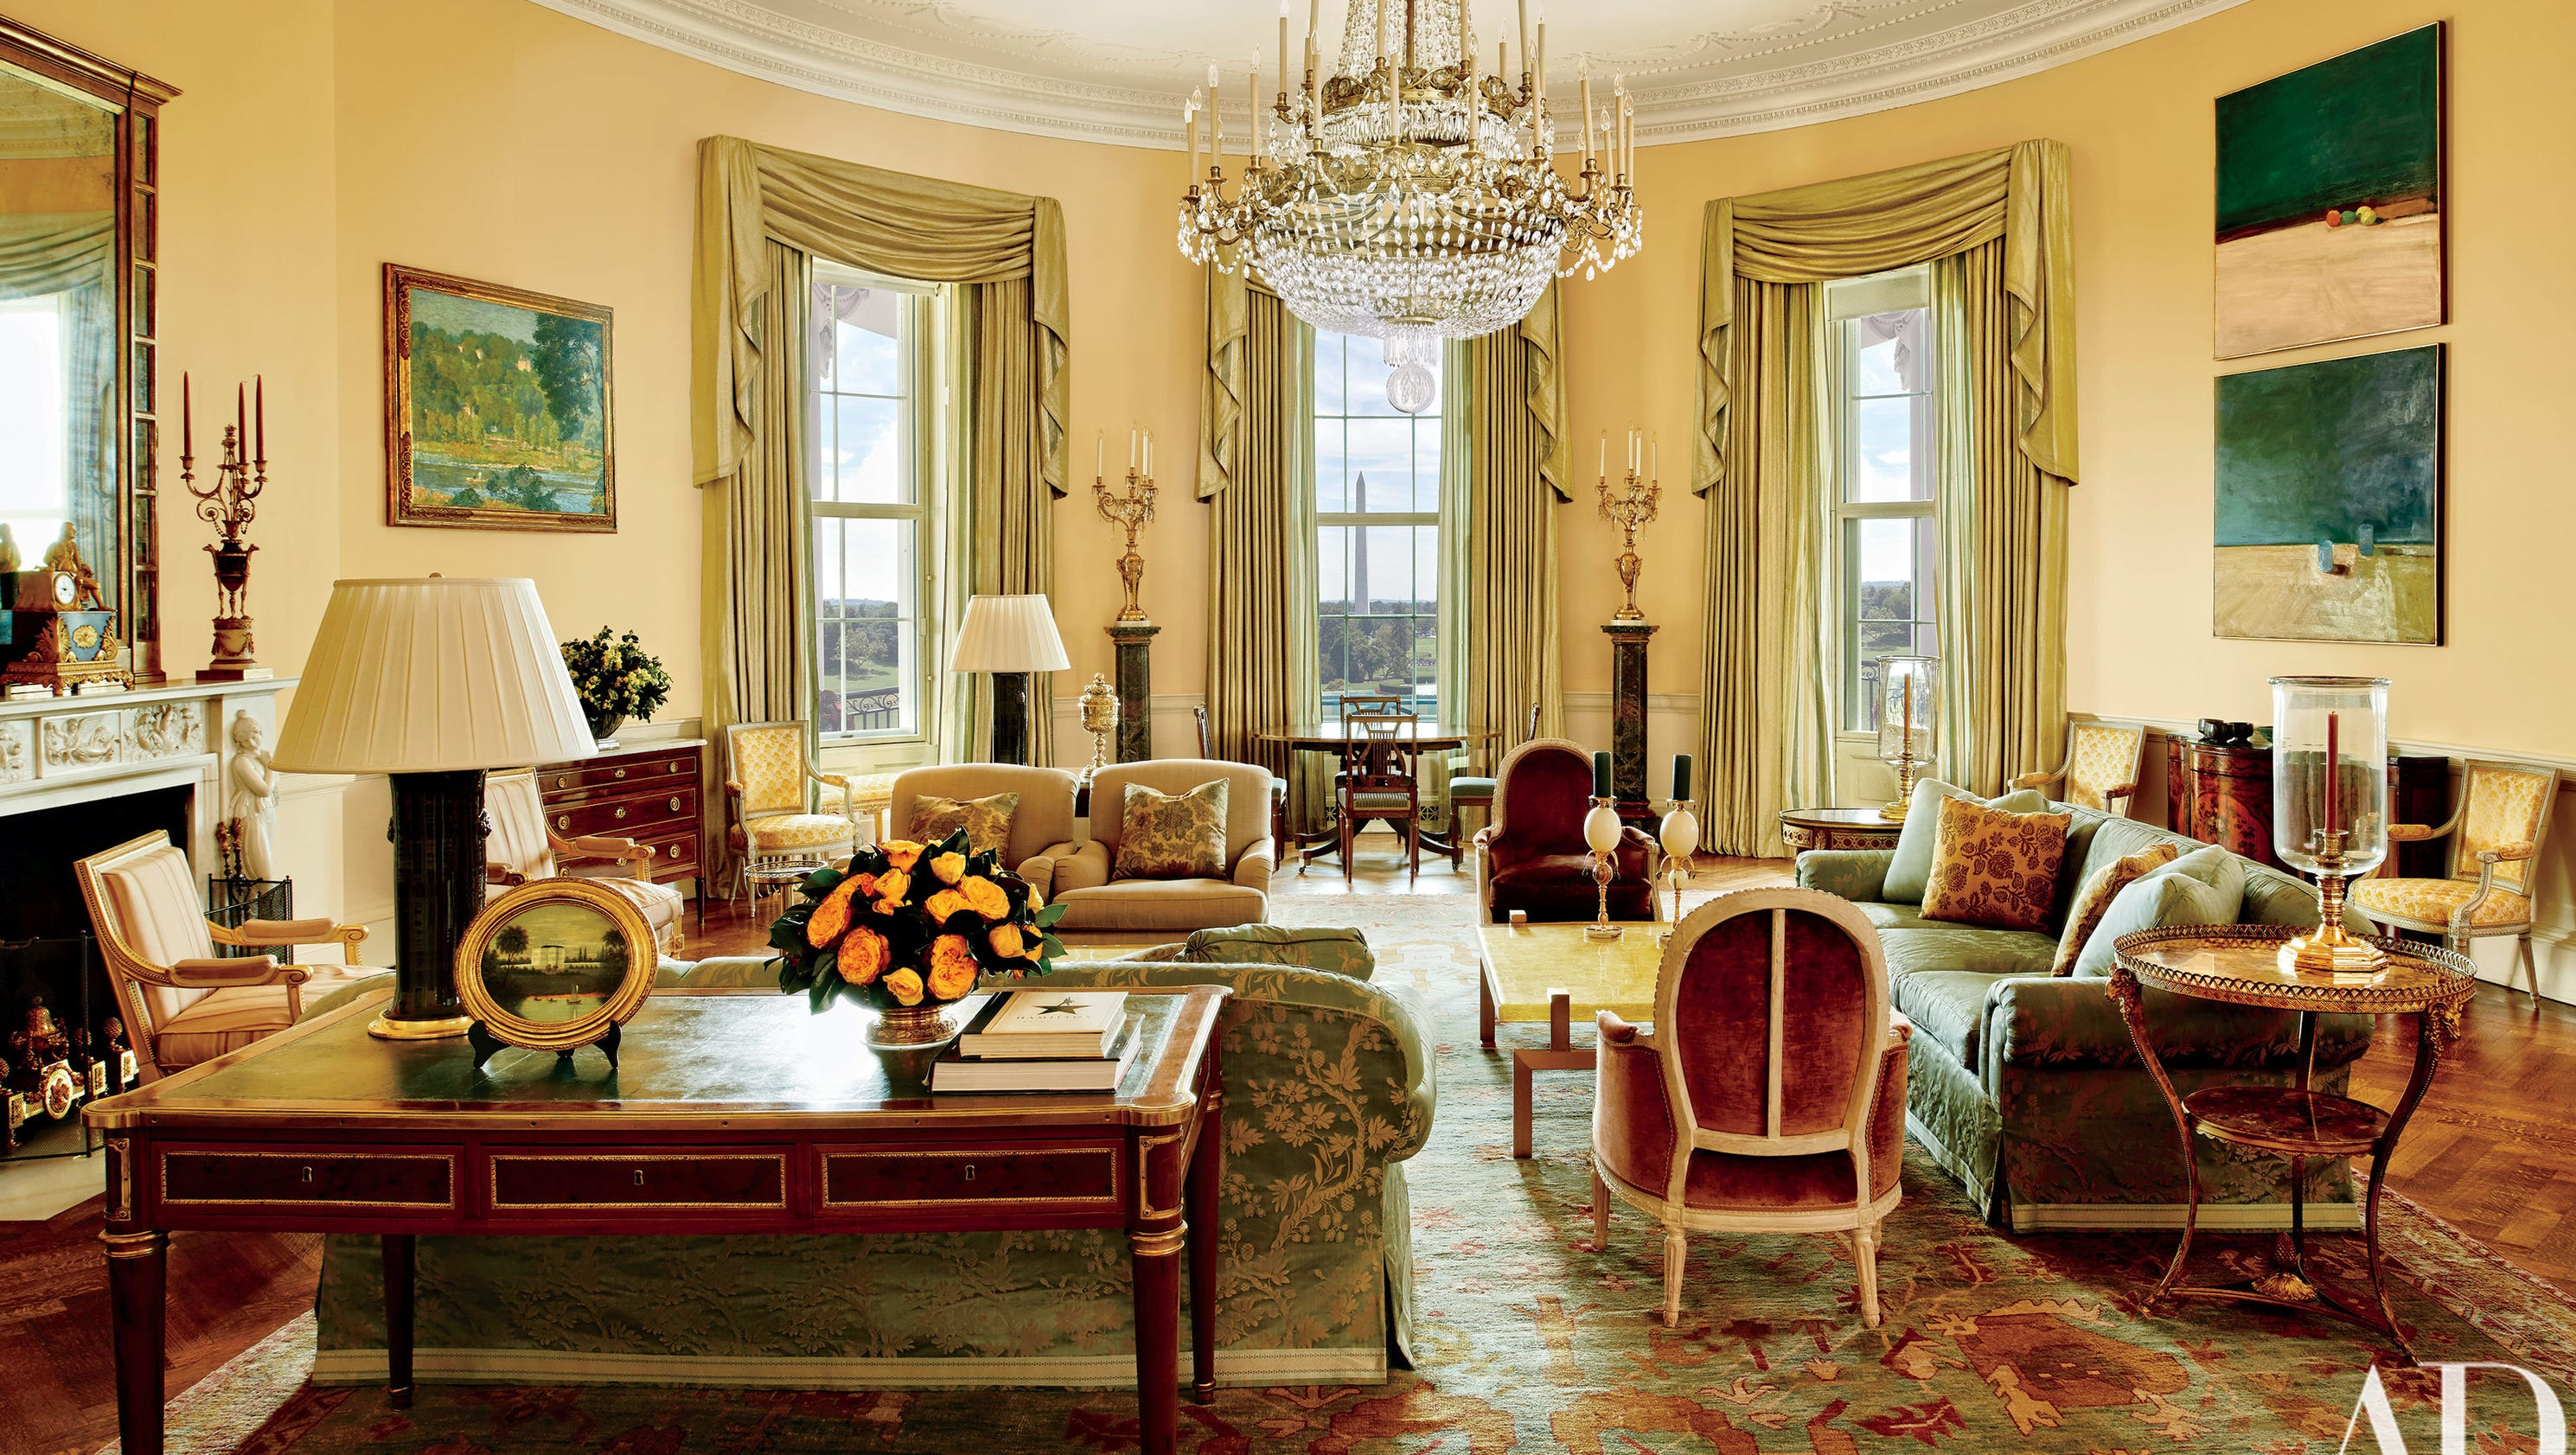 See the obamas 39 white house private quarters for the first House plans usa